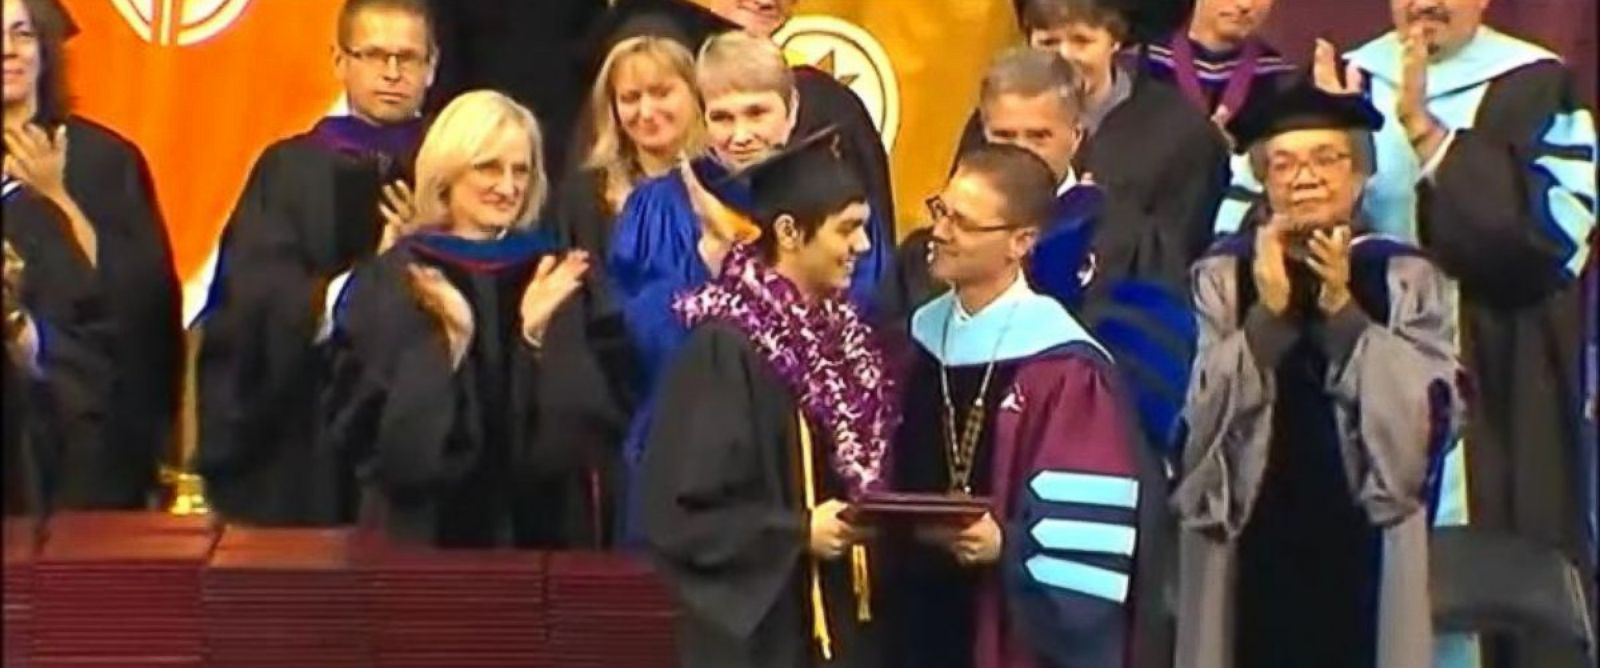 PHOTO: John Meis, a senior at SPU who heroically tackled and pepper-sprayed the gunman, graduated from SPU this weekend.